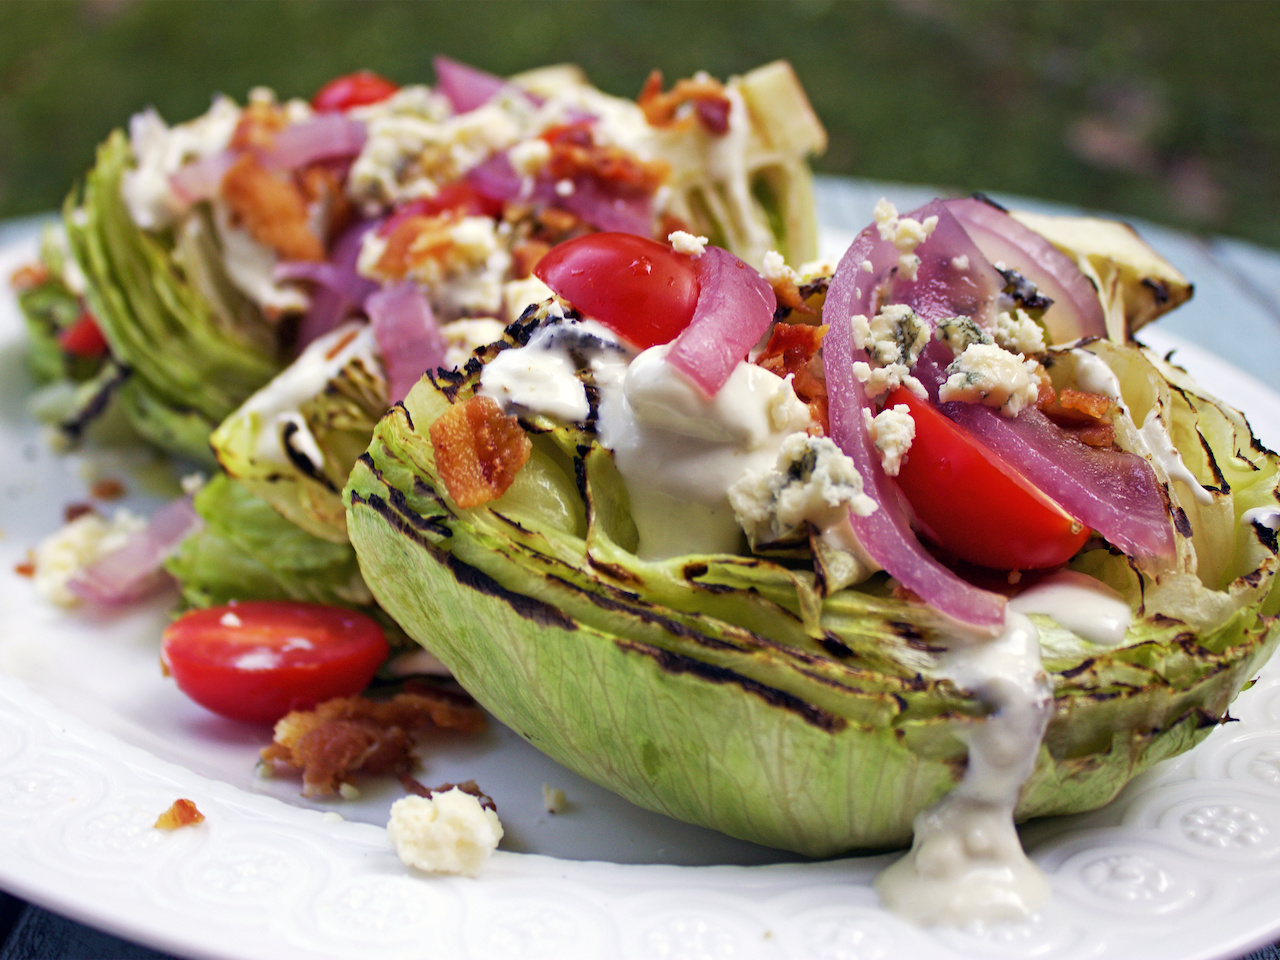 Grilled onion and grilled iceberg wedge salad